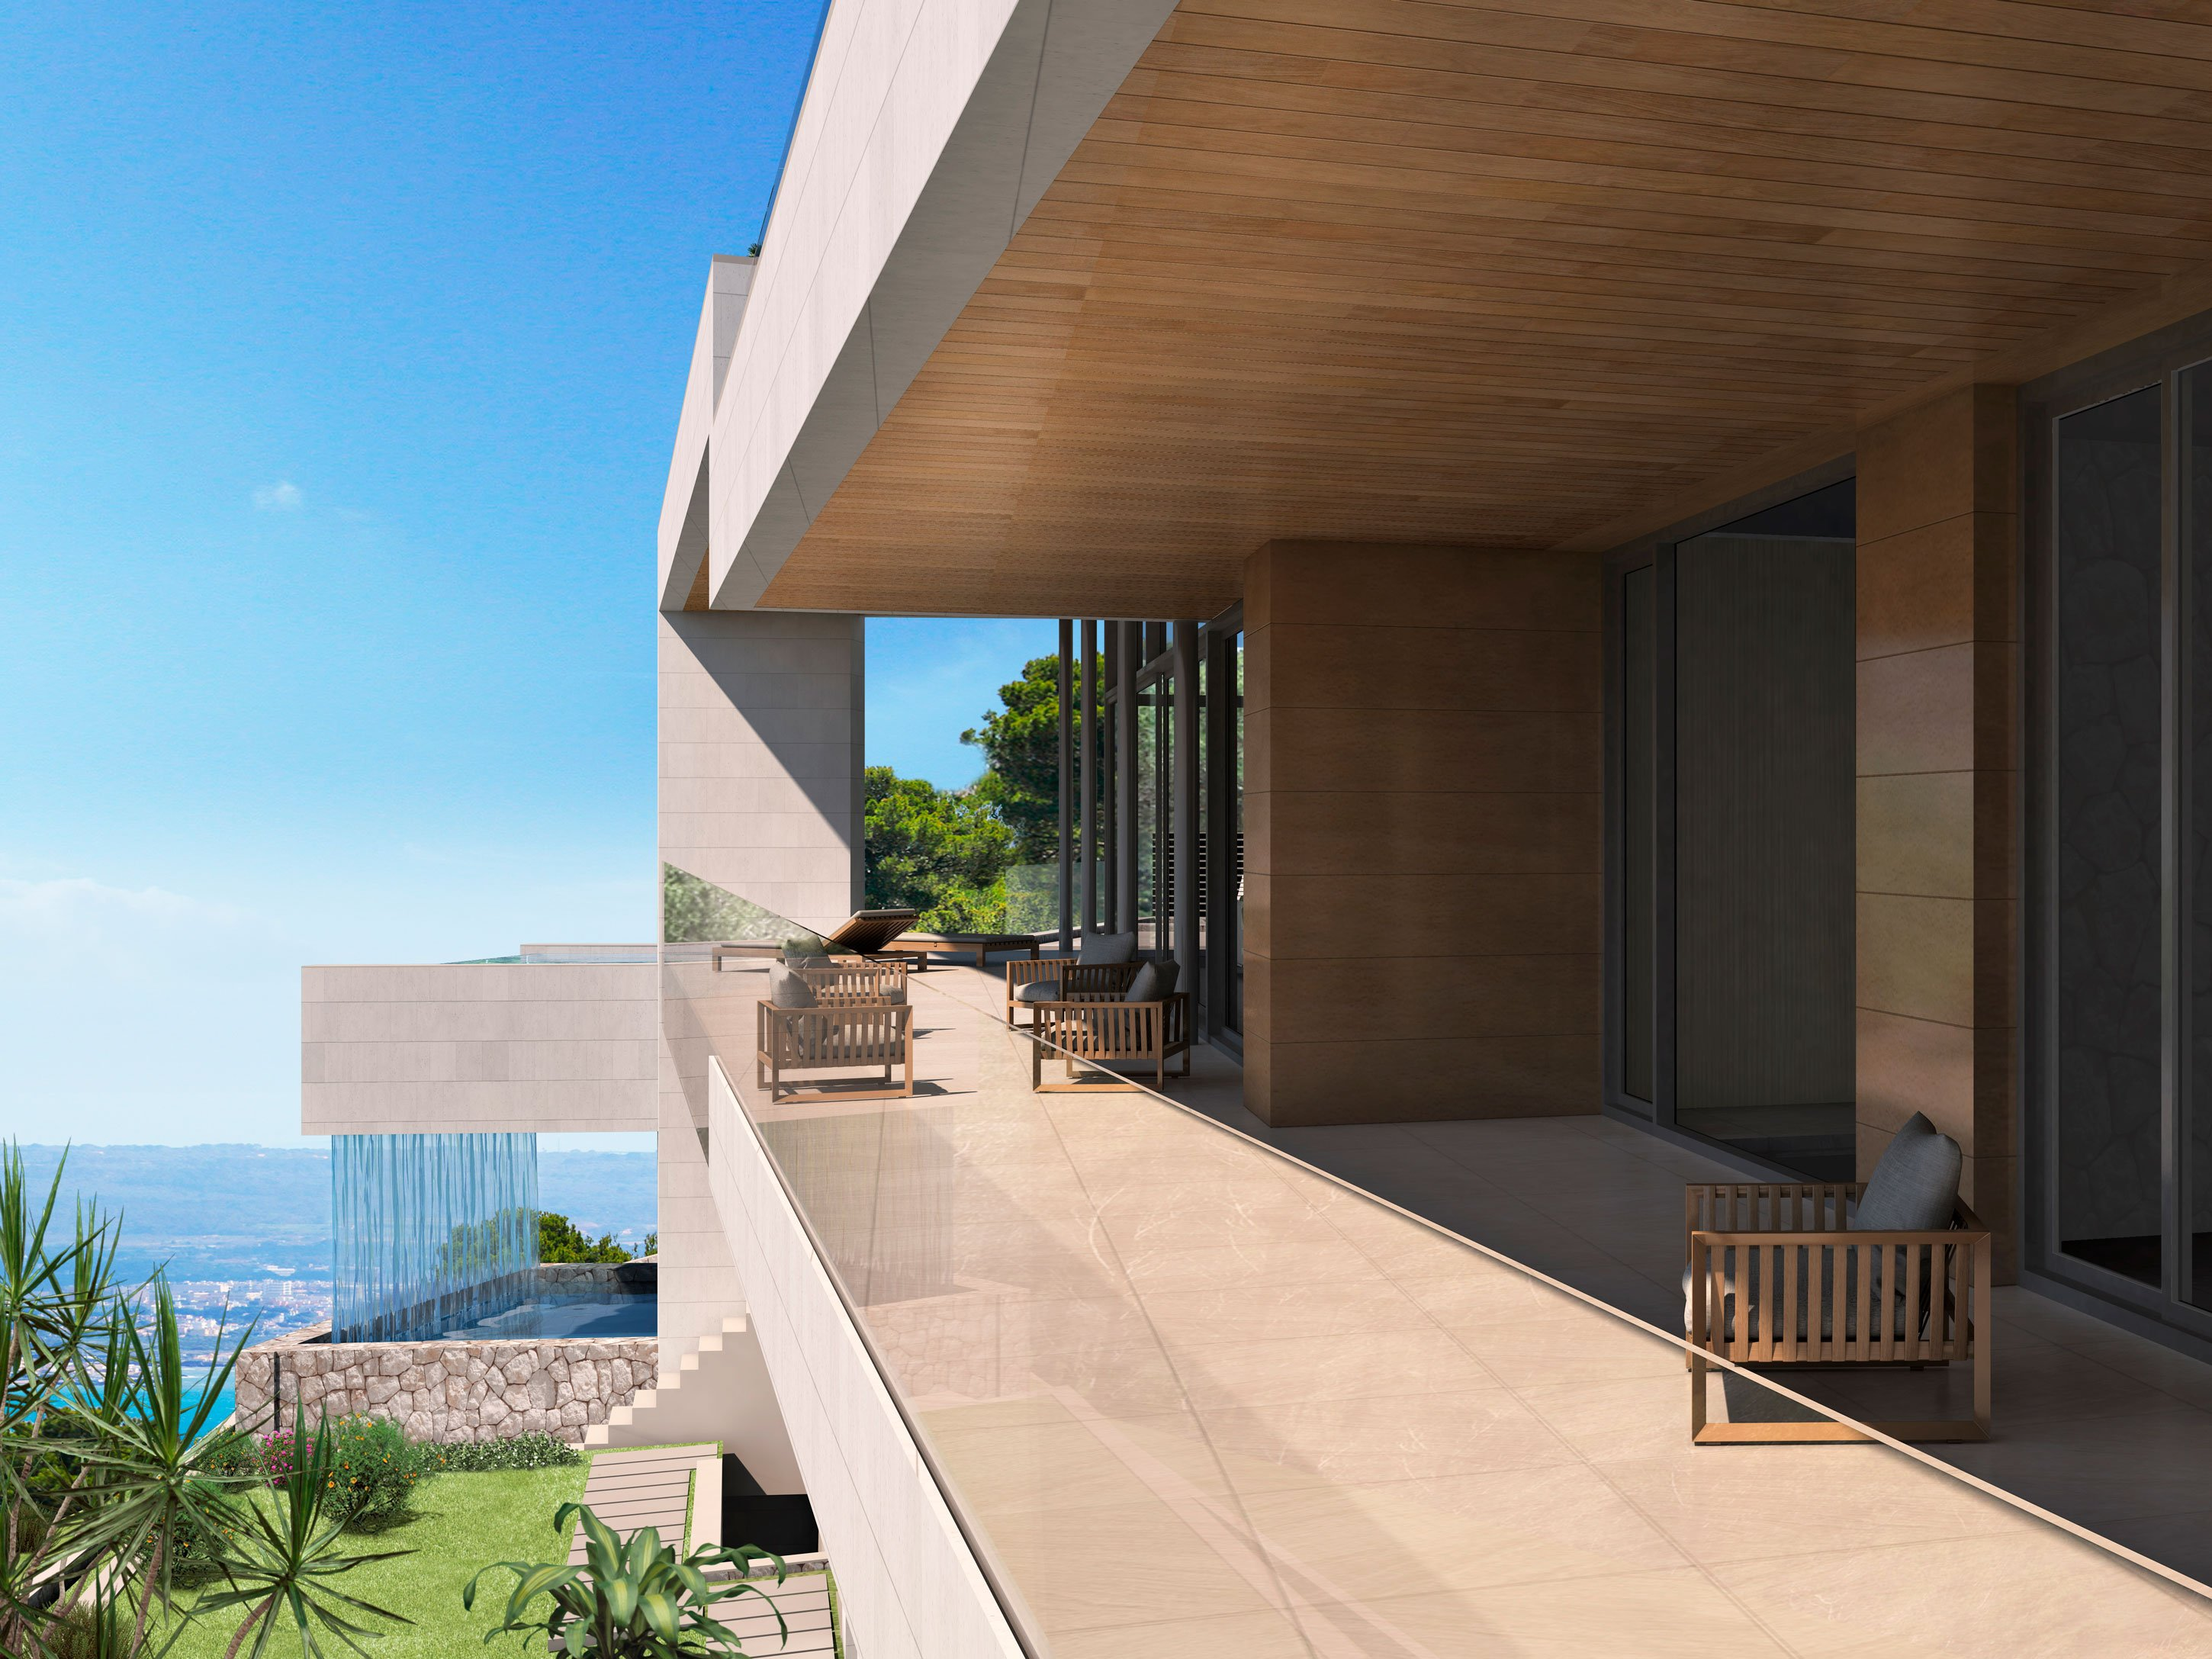 PMA-STUDIO-Son-Vida-3-Architect-Mallorca-House-Project-Management-Architecture-05